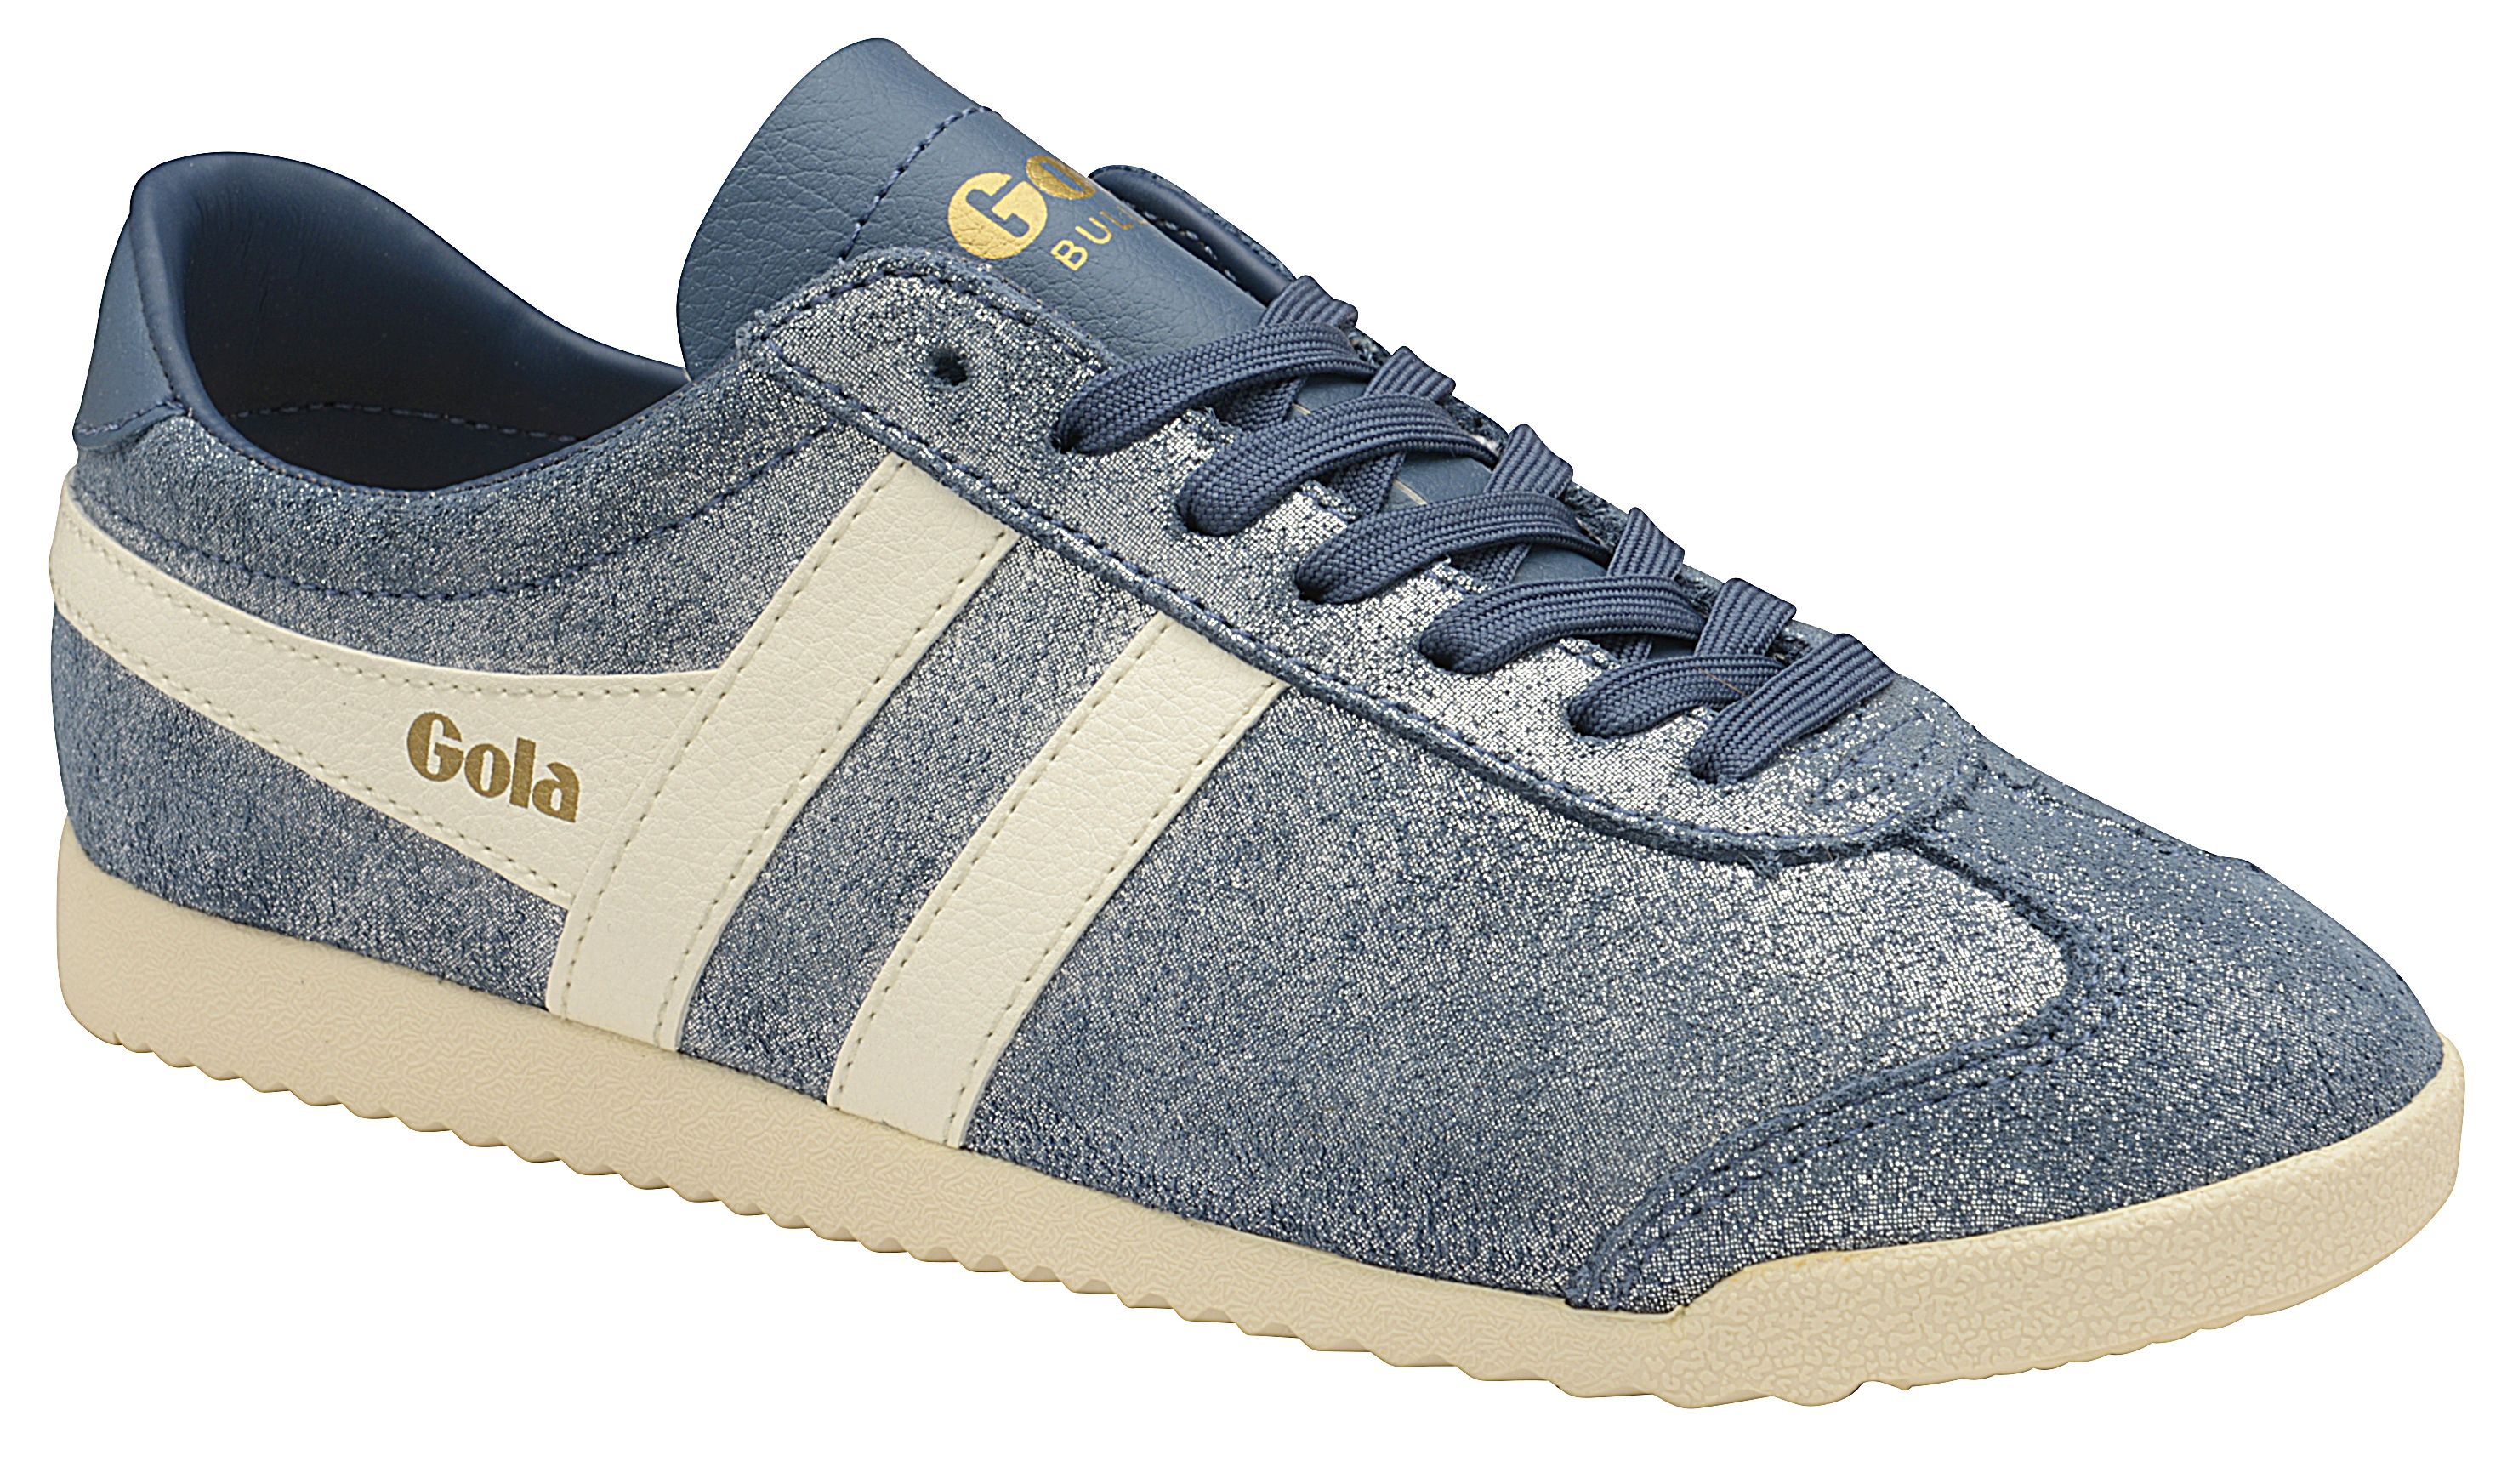 Gola Bullet Glitter Lace Up Trainers, Baltic Blue